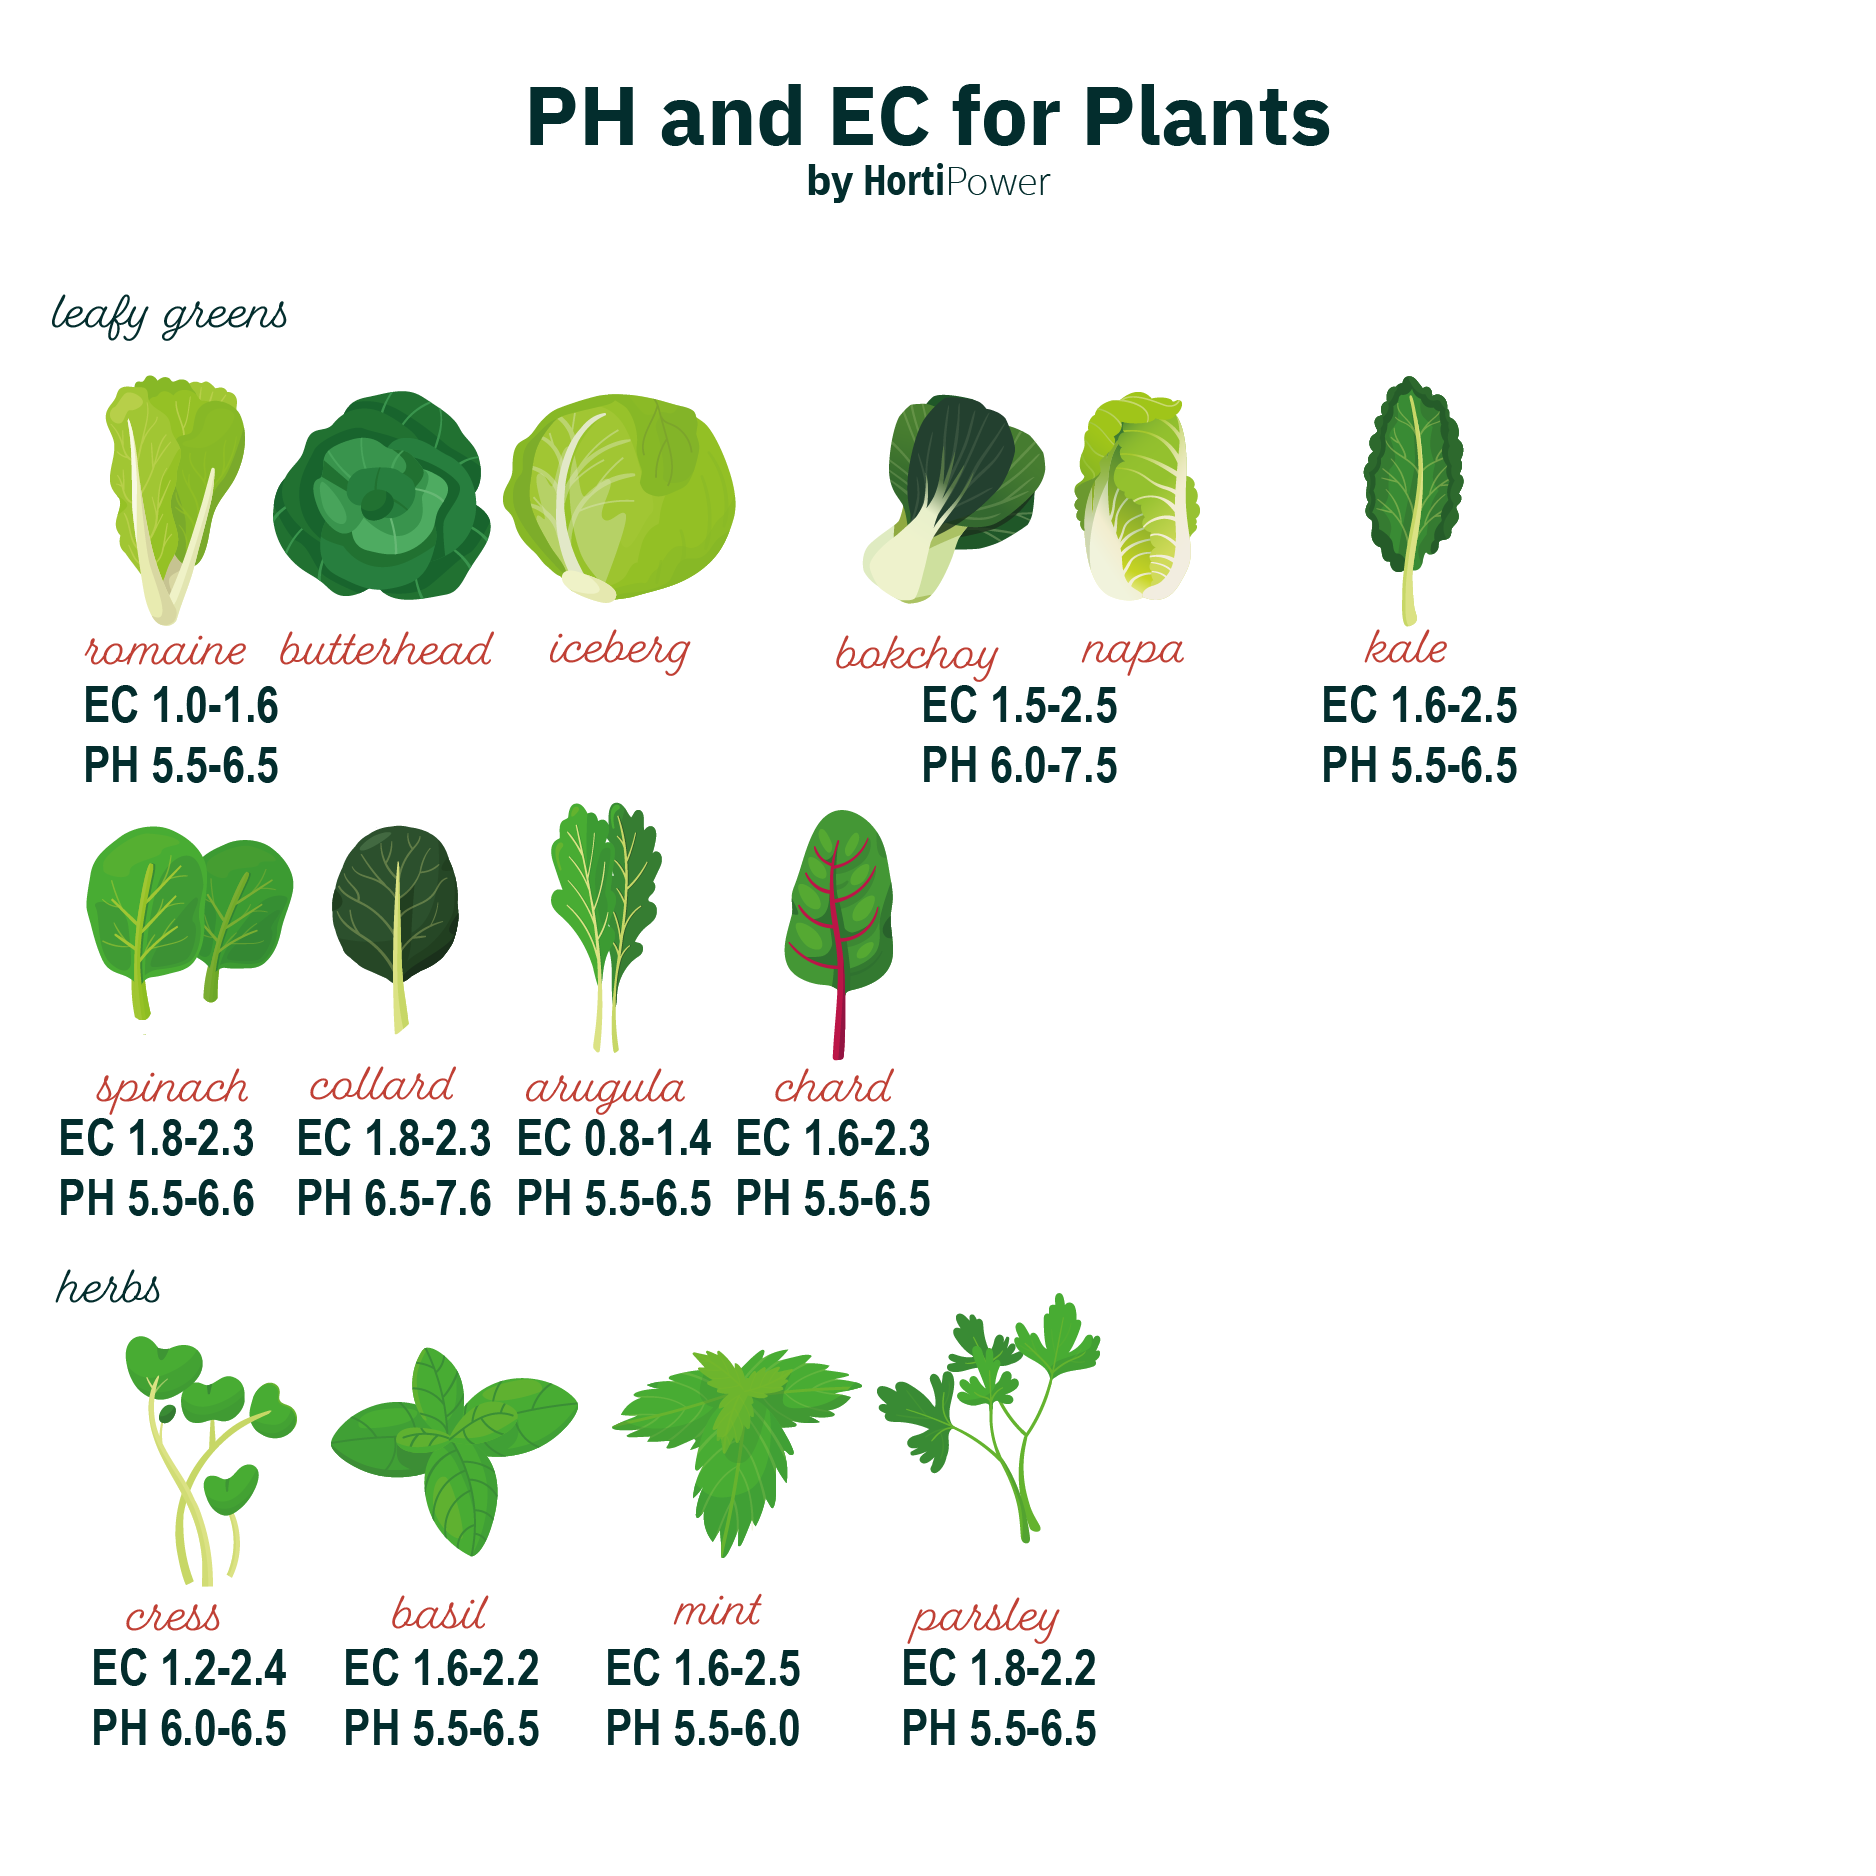 ph and ec for plants - leafy greens